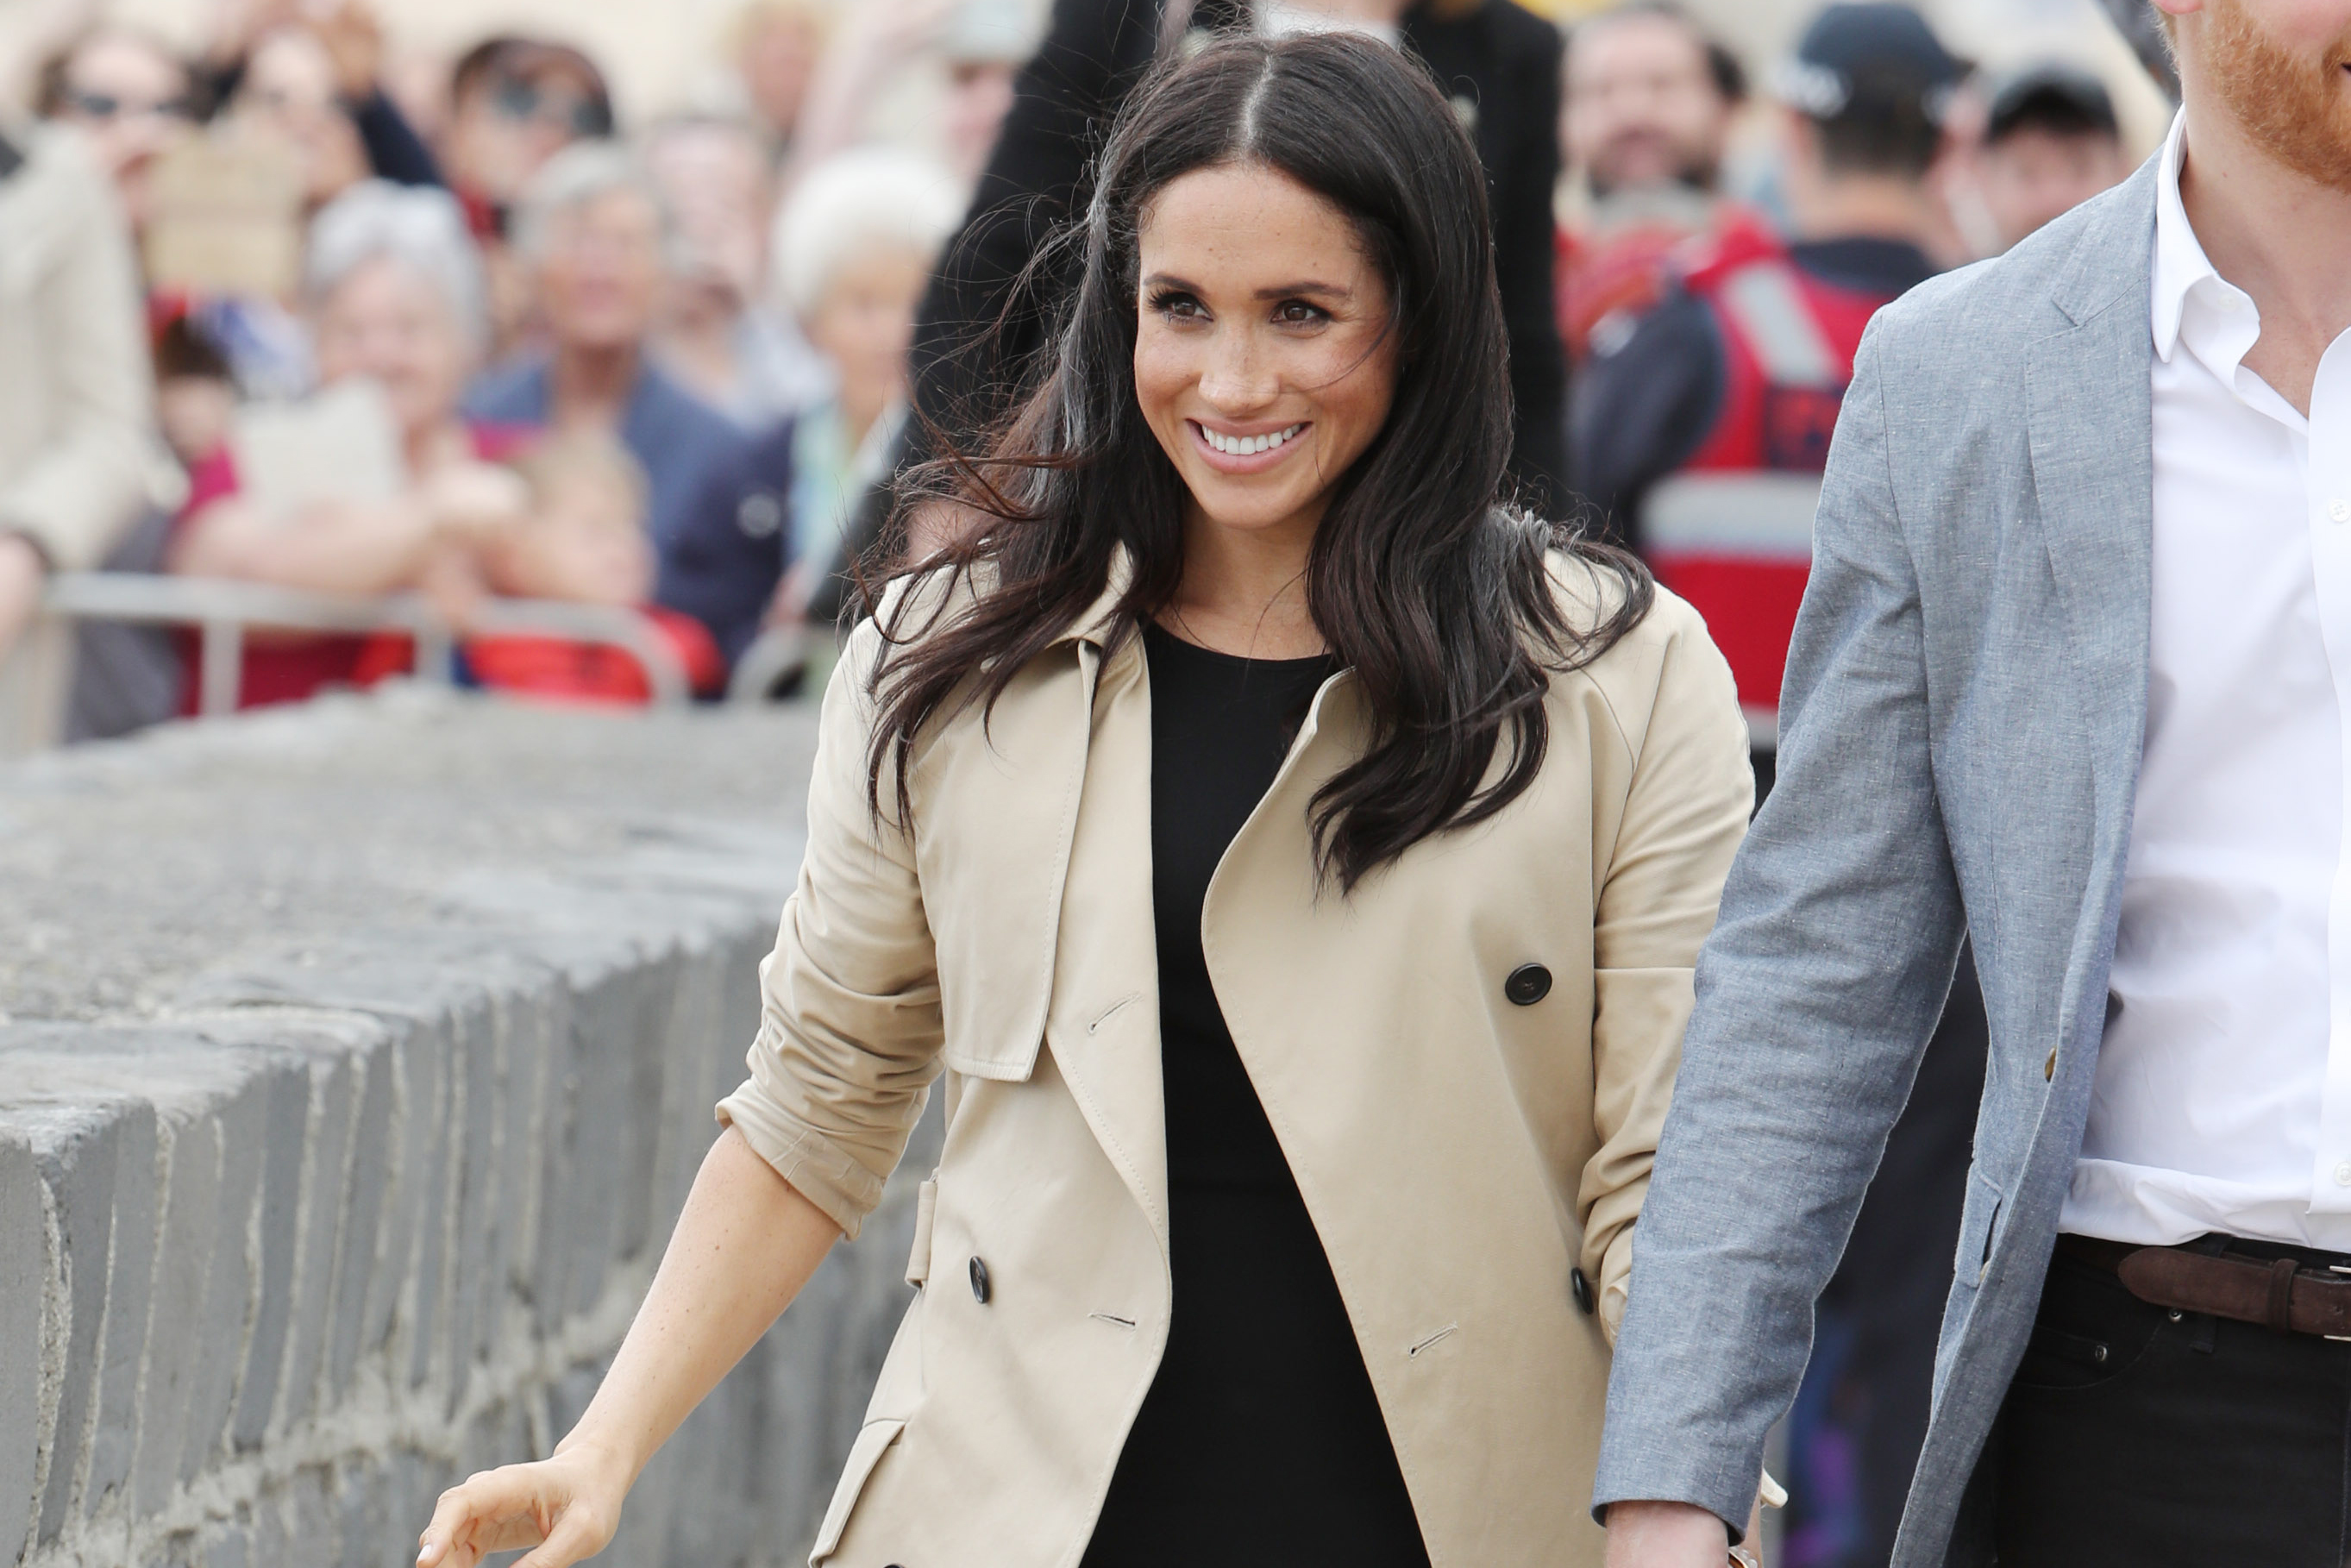 Meghan Markle's Rothy's Flats: 5 Things